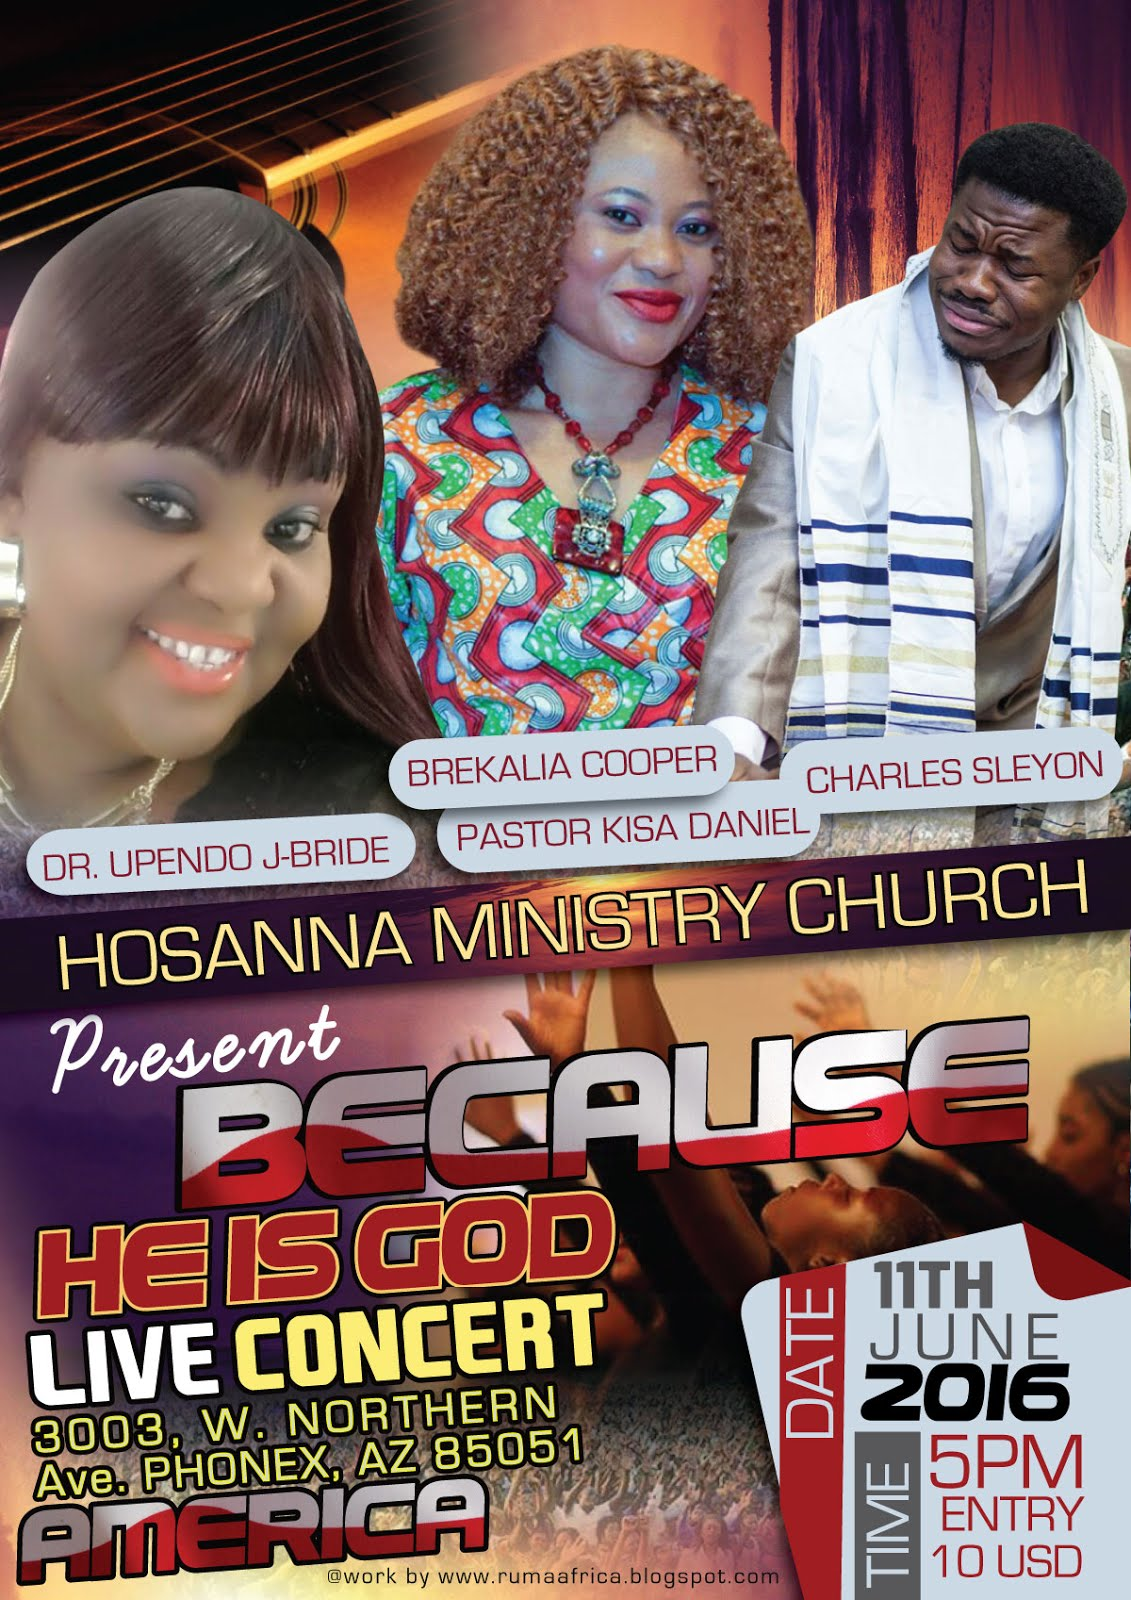 BEACUESE HE IS GOD LIVE CONCERT